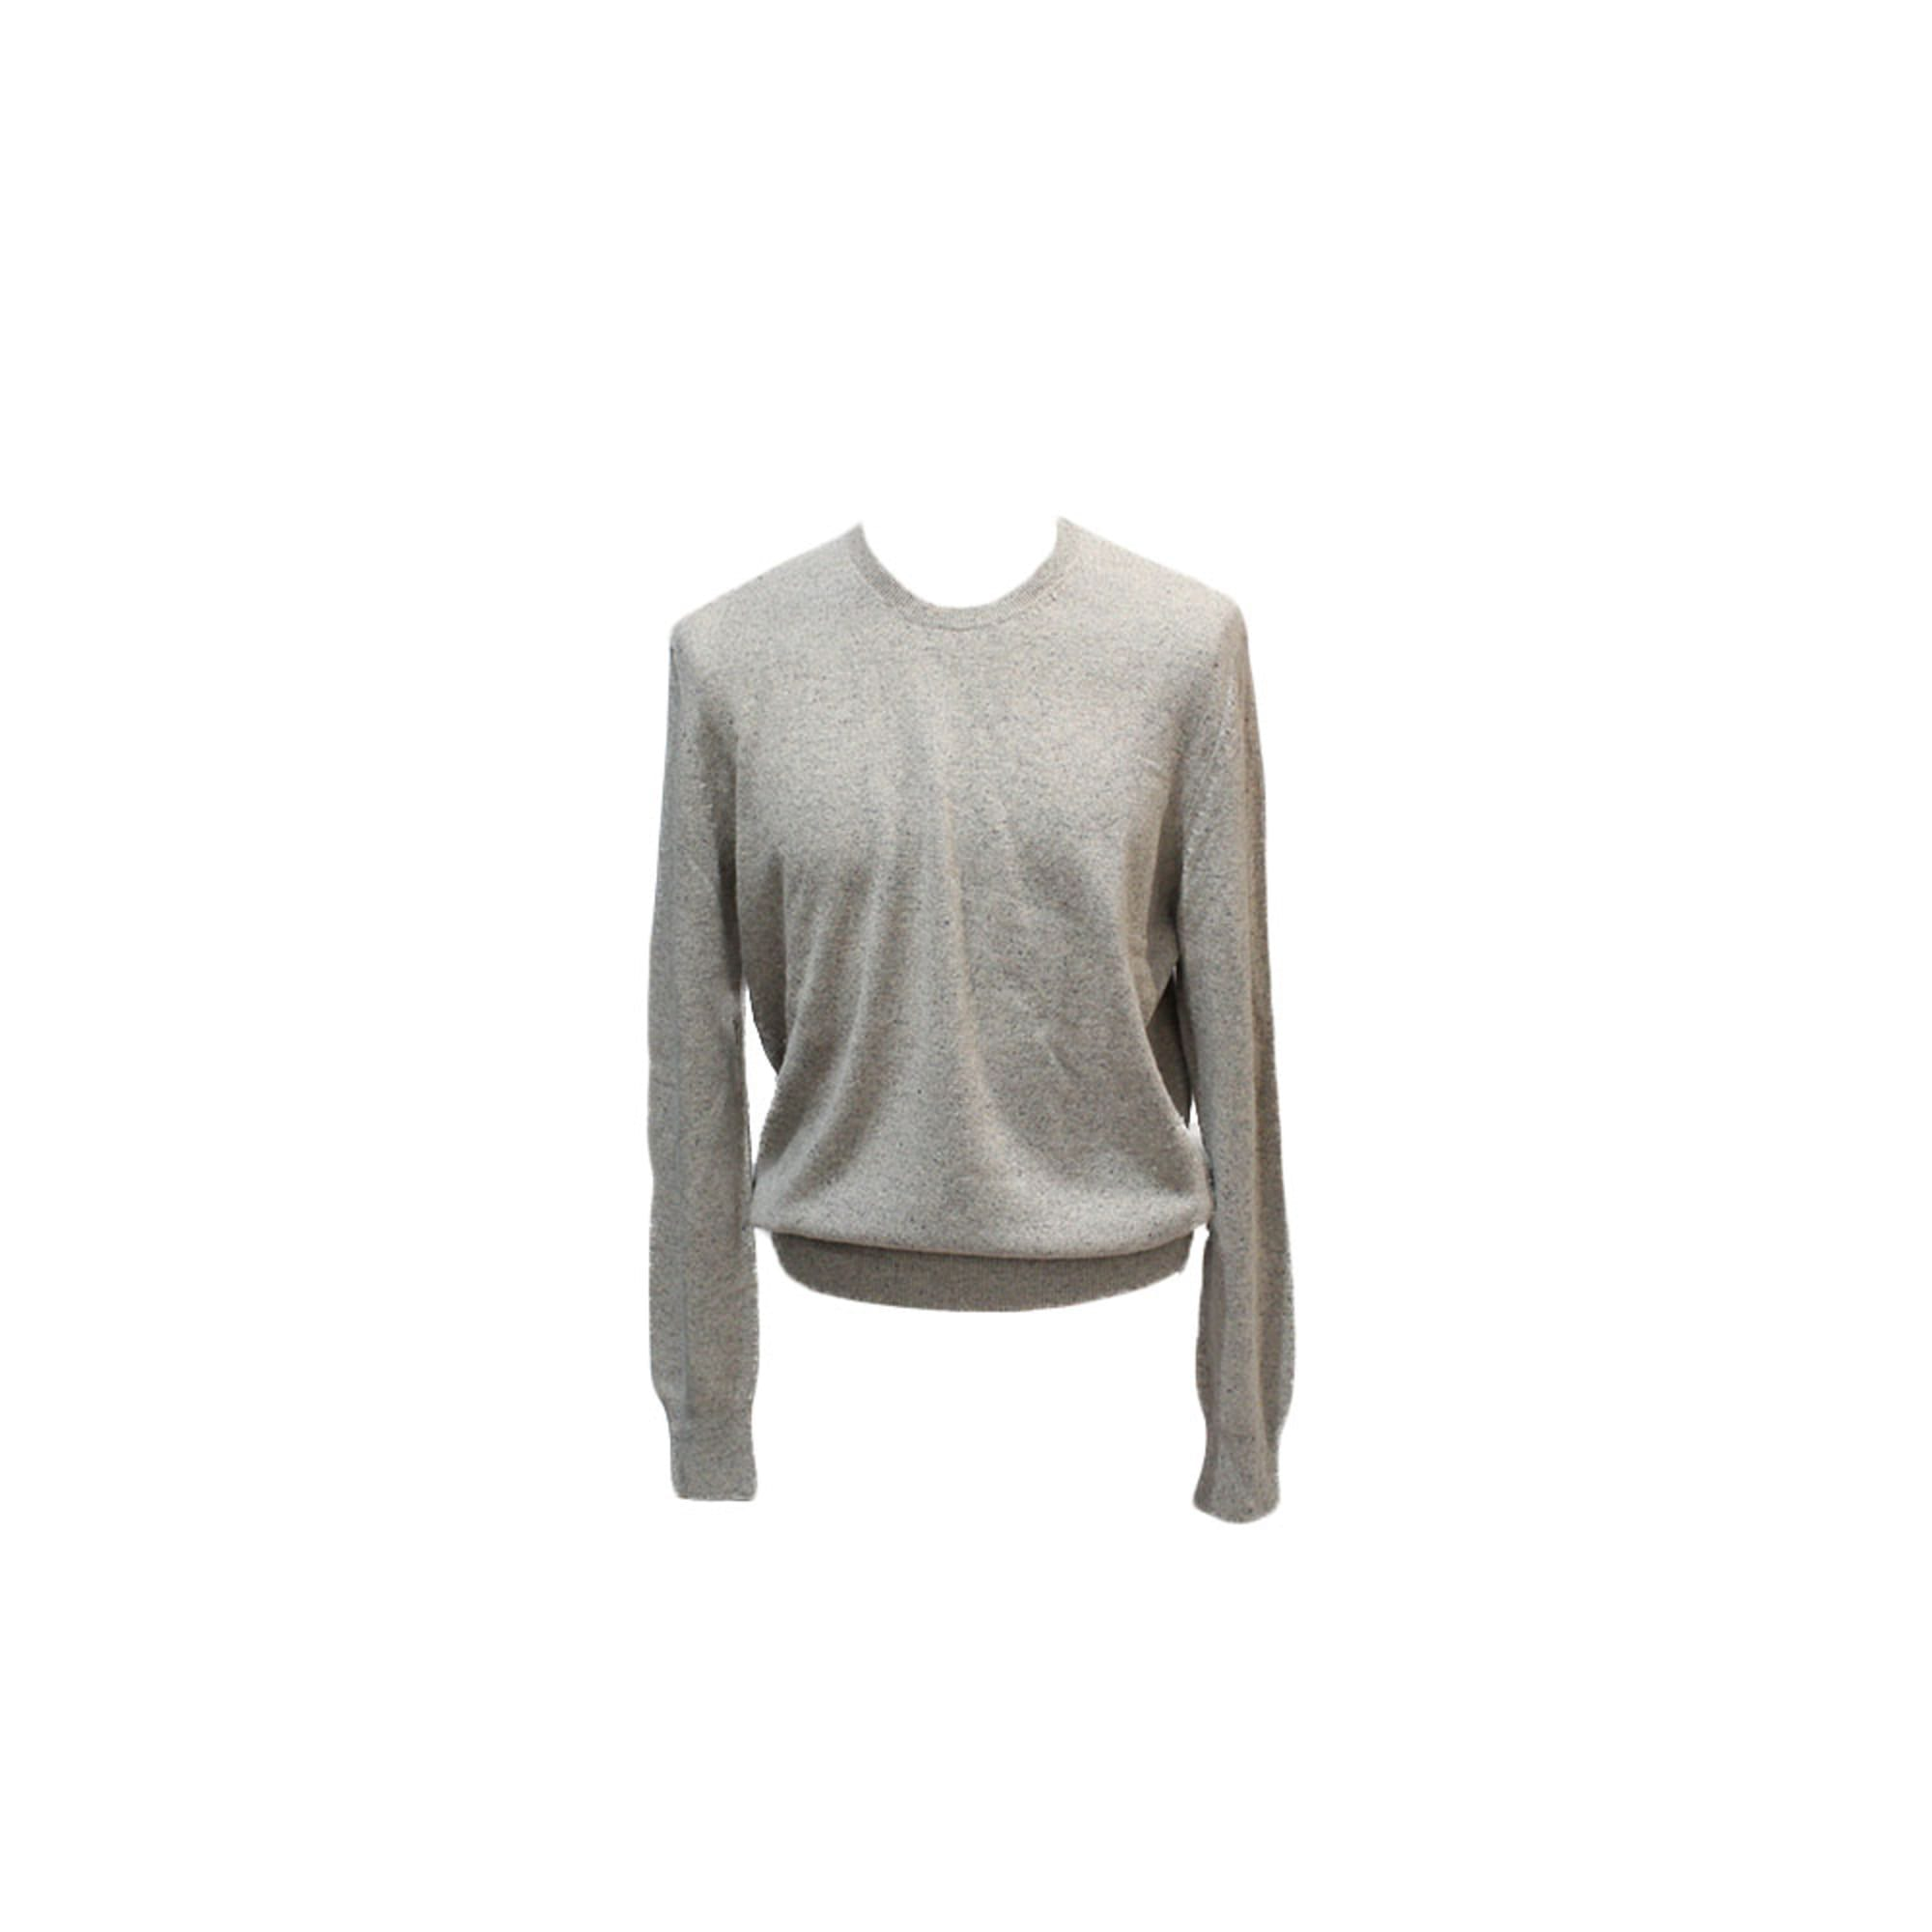 Sweater ACNE Beige, camel